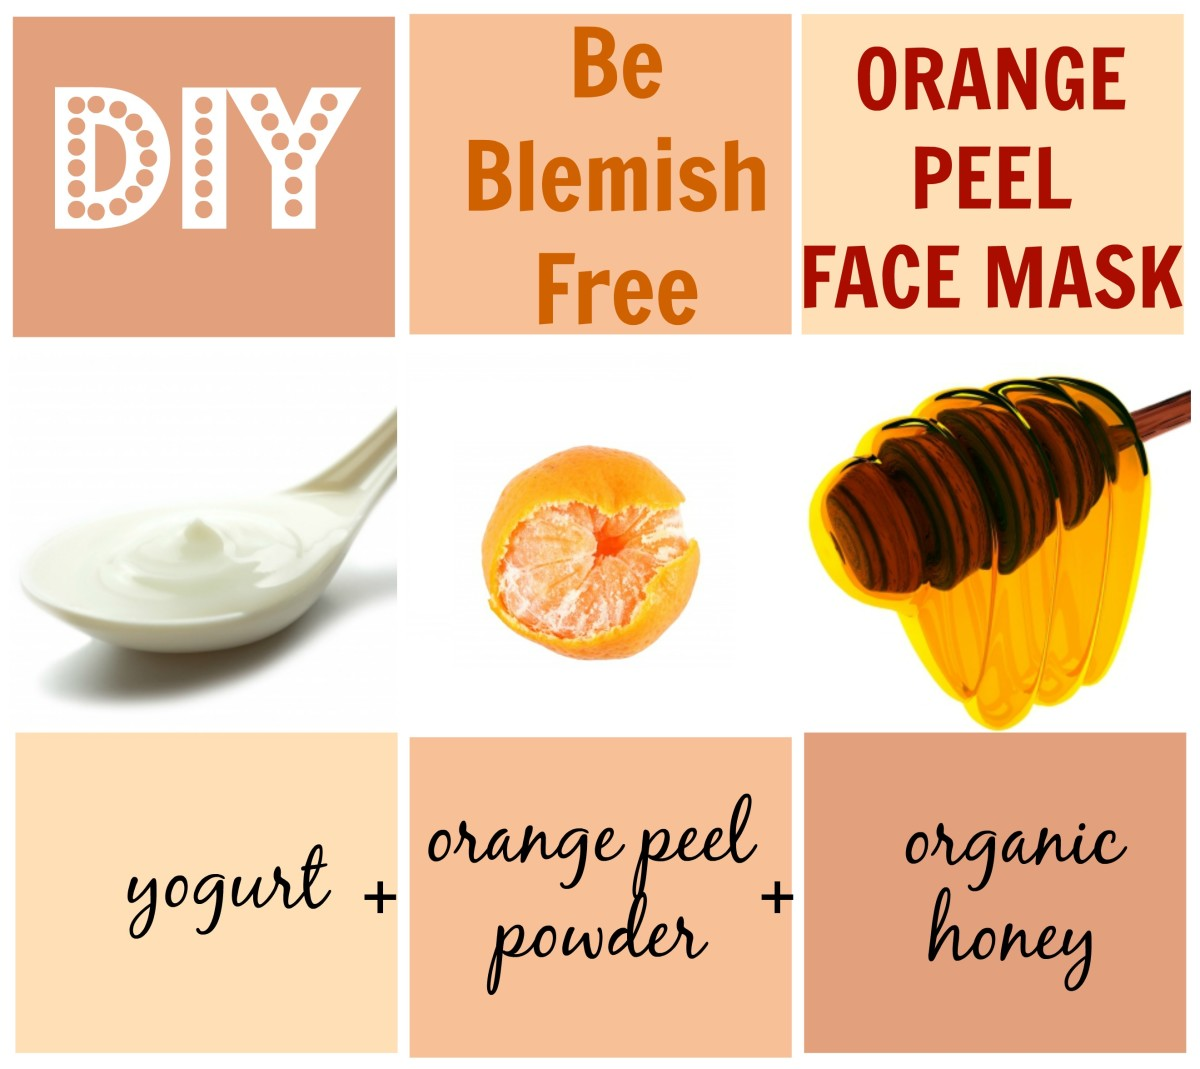 Facial peeling recipes at home